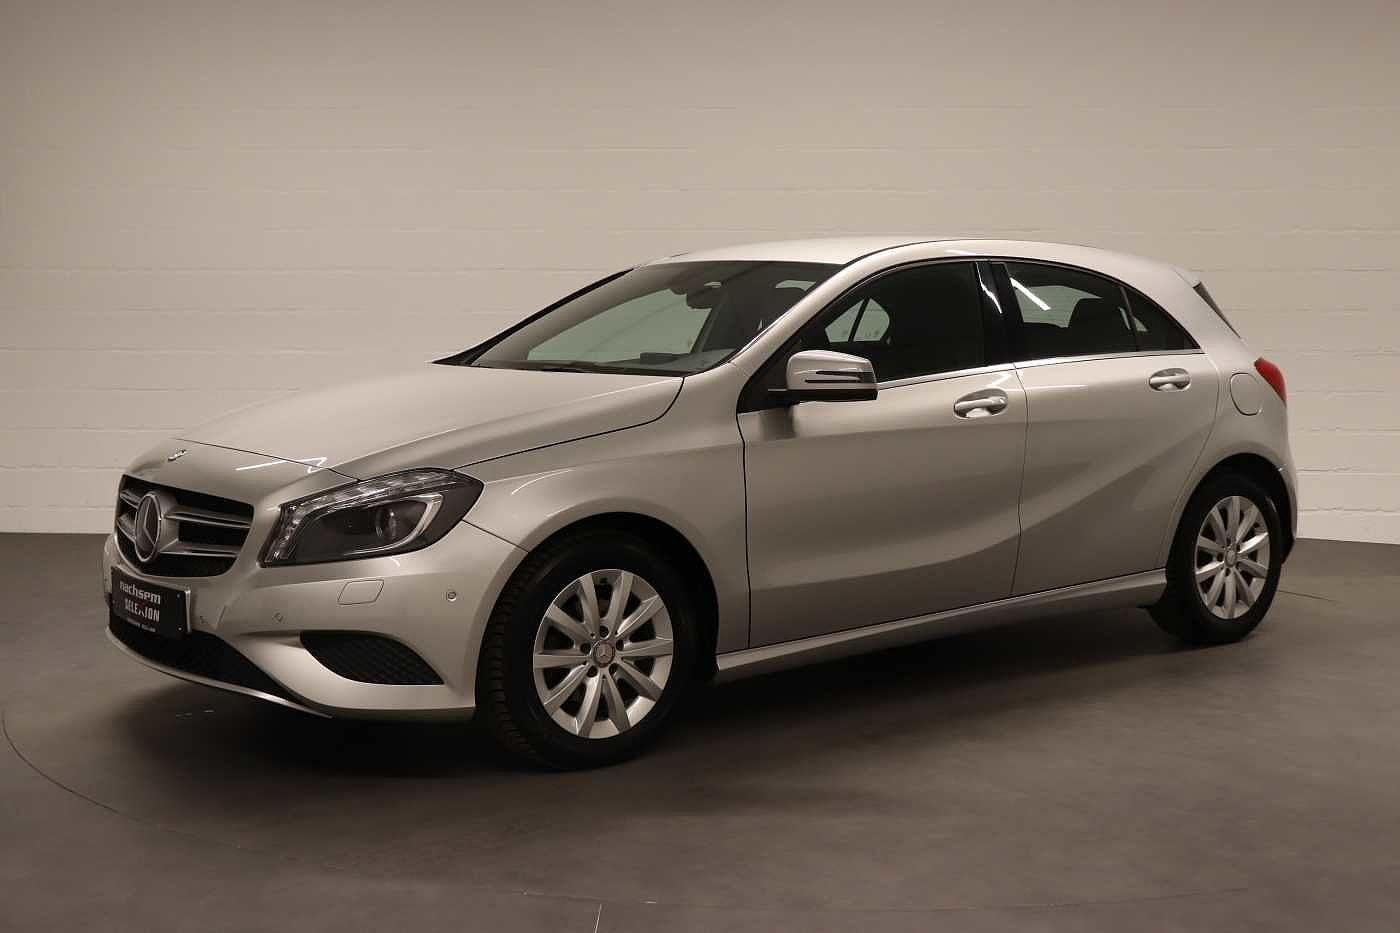 Mercedes-Benz A 180 1.5D - photo 3